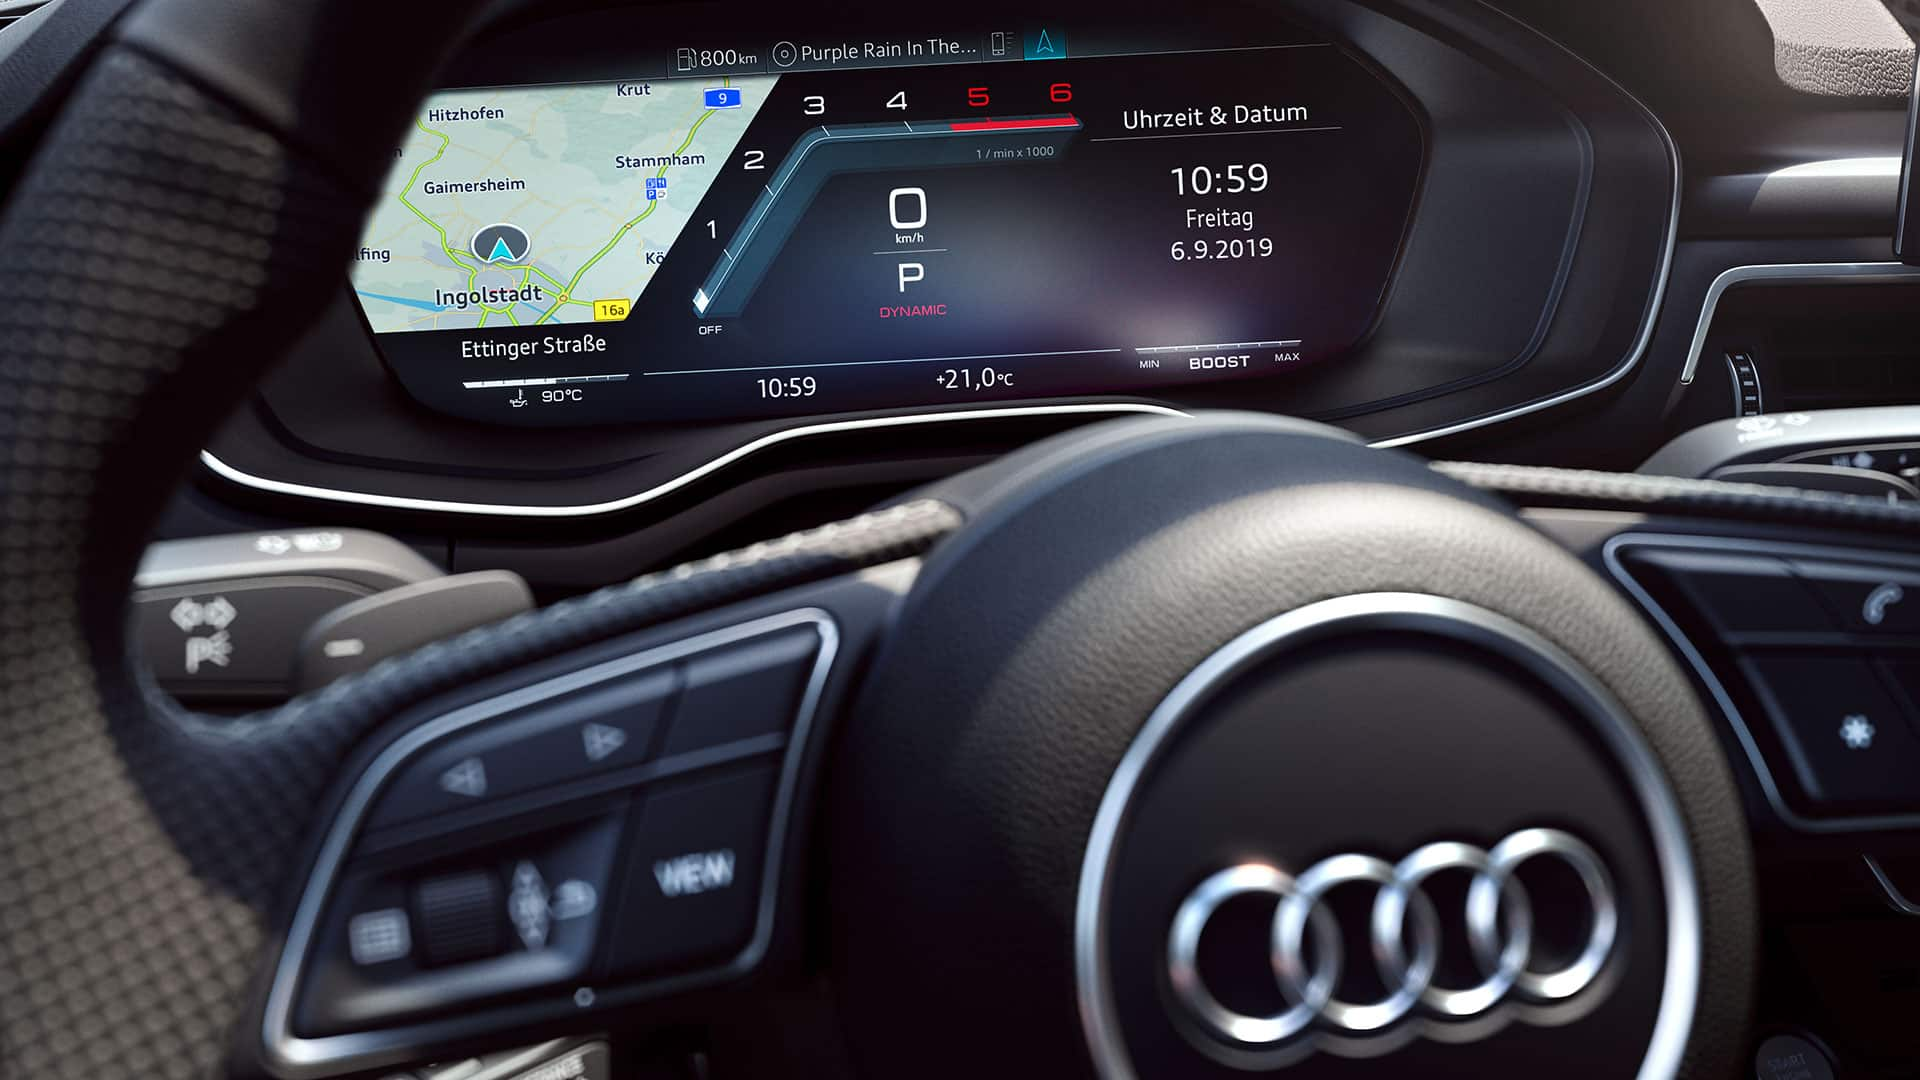 Audi virtual cockpit im Audi S5 Coupé TDI